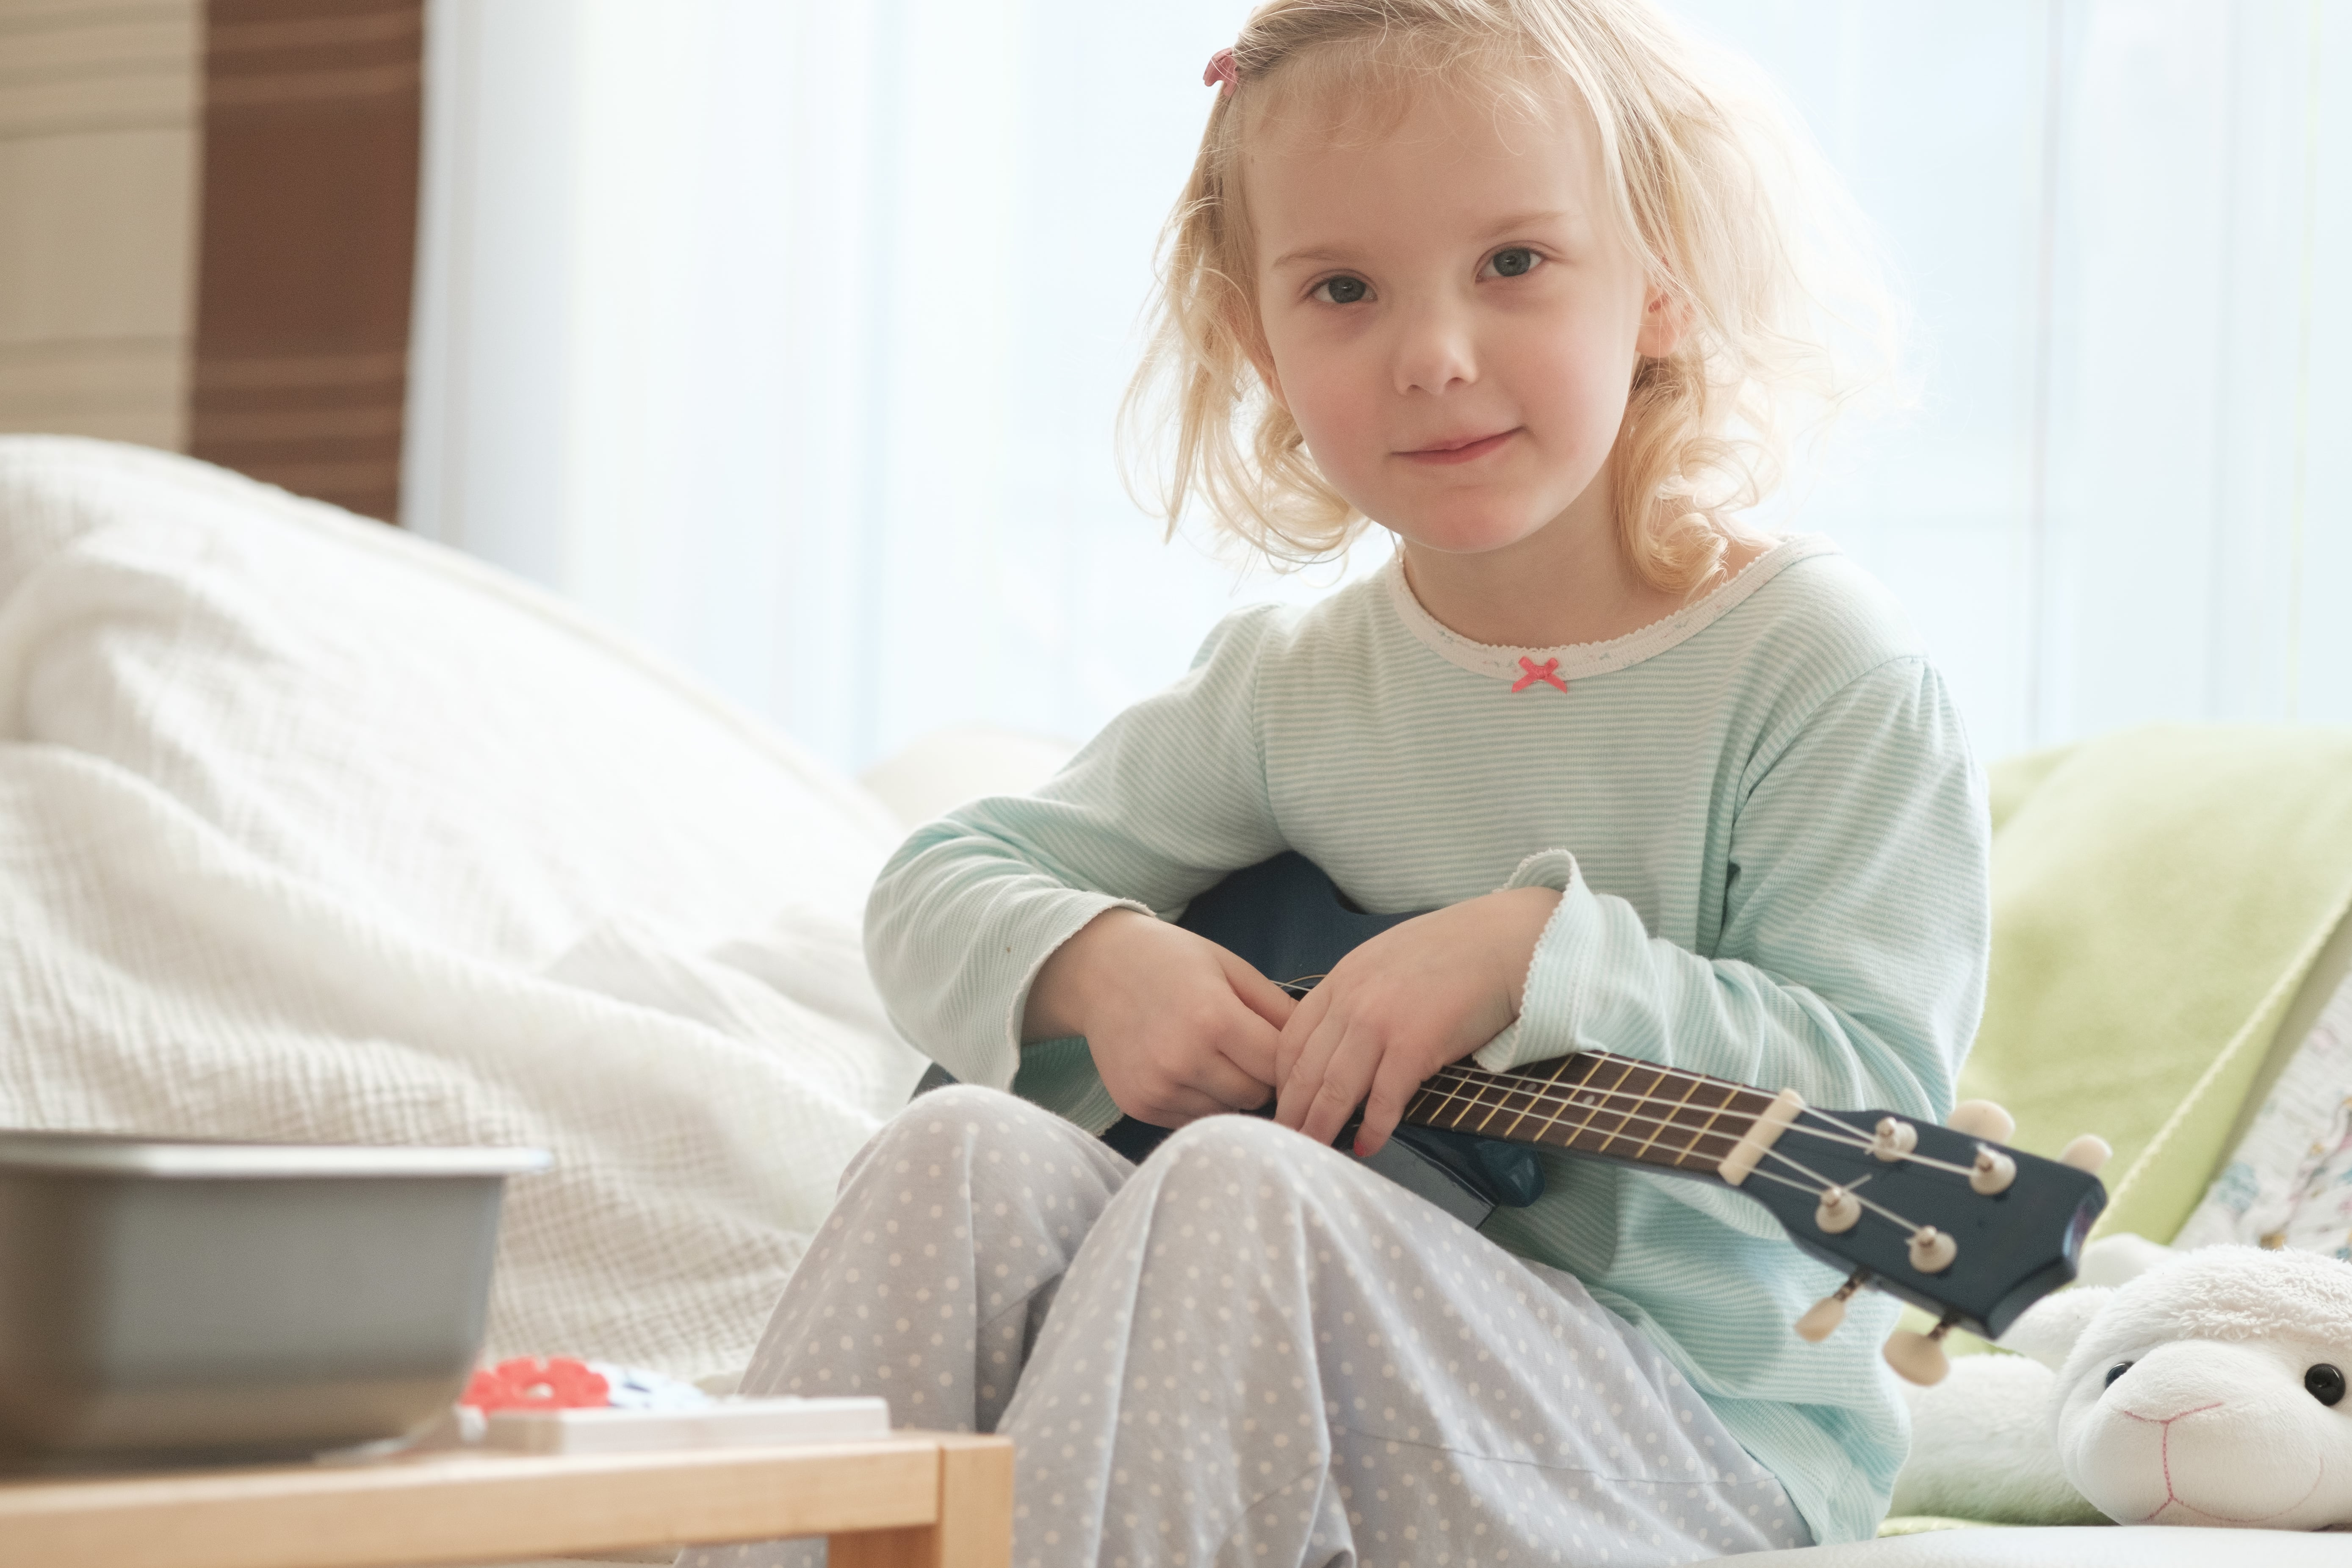 ukulele lessons near me for kids and adults in hendersonville nc